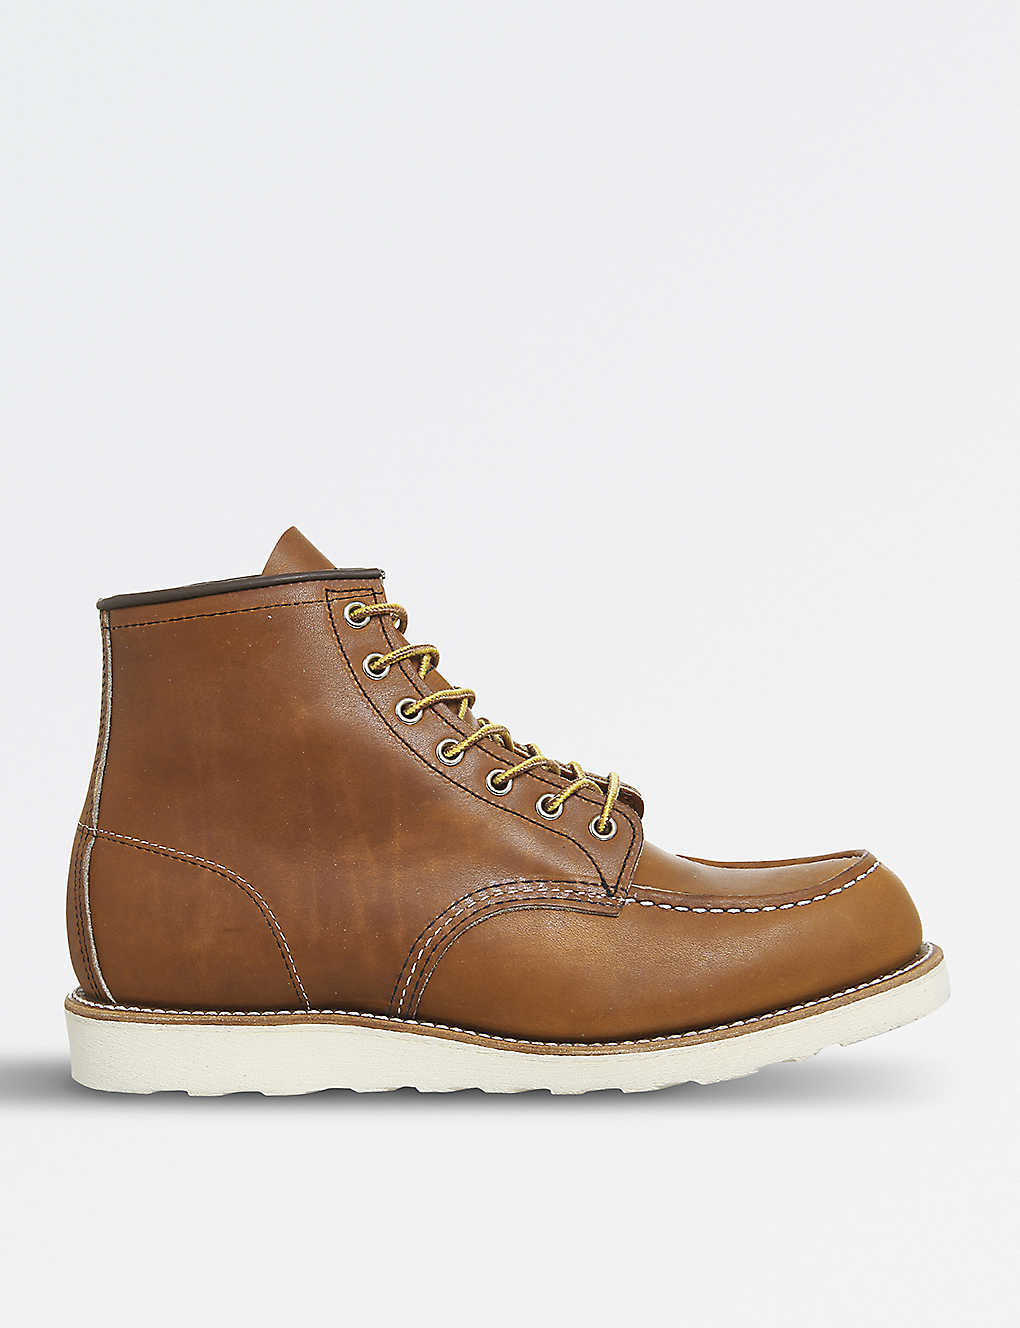 red wing boots birmingham uk